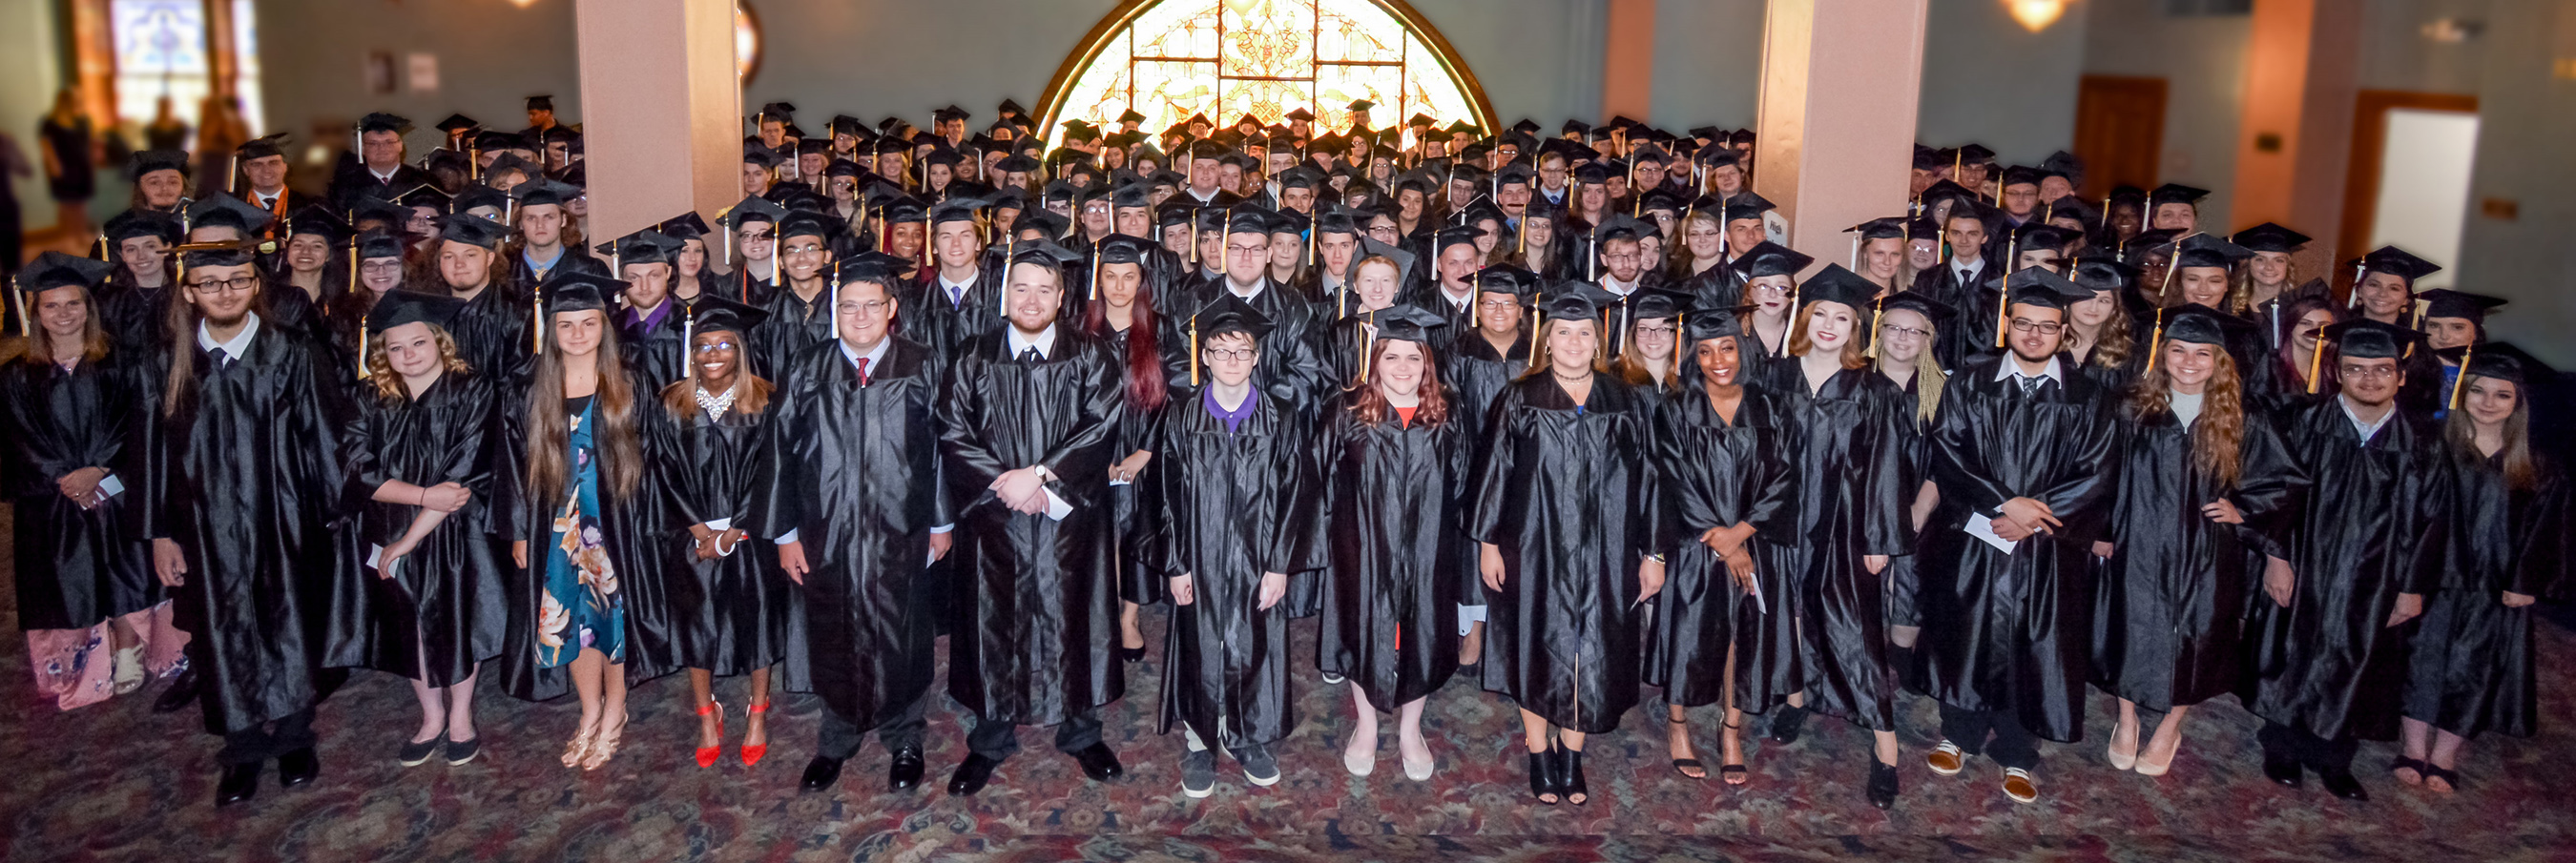 Connections Academy online schools nationwide graduate over 5,300 seniors. The Class of 2018 collectively earned over $38 million in scholarships!